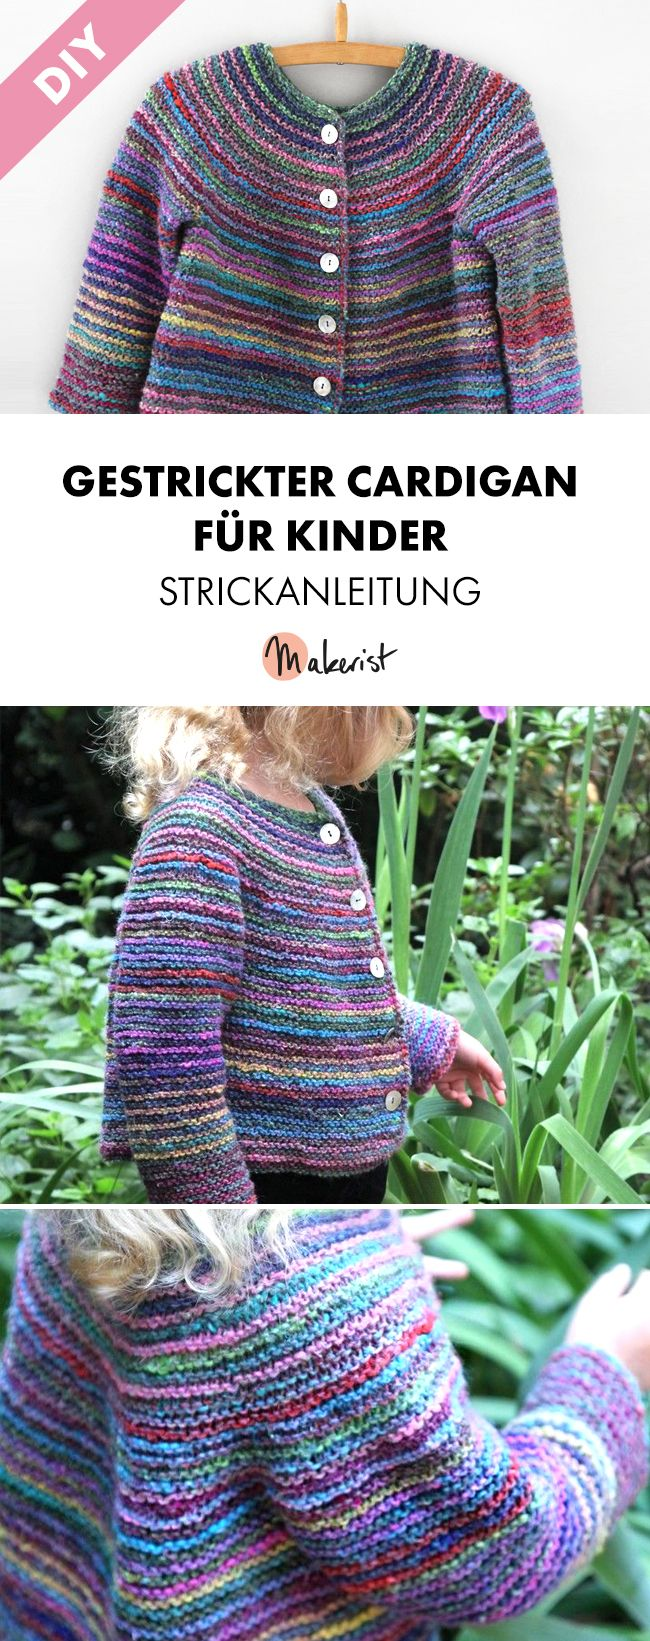 Top-down Strickjacke EVA / Strickanleitung #menscrochetedhats